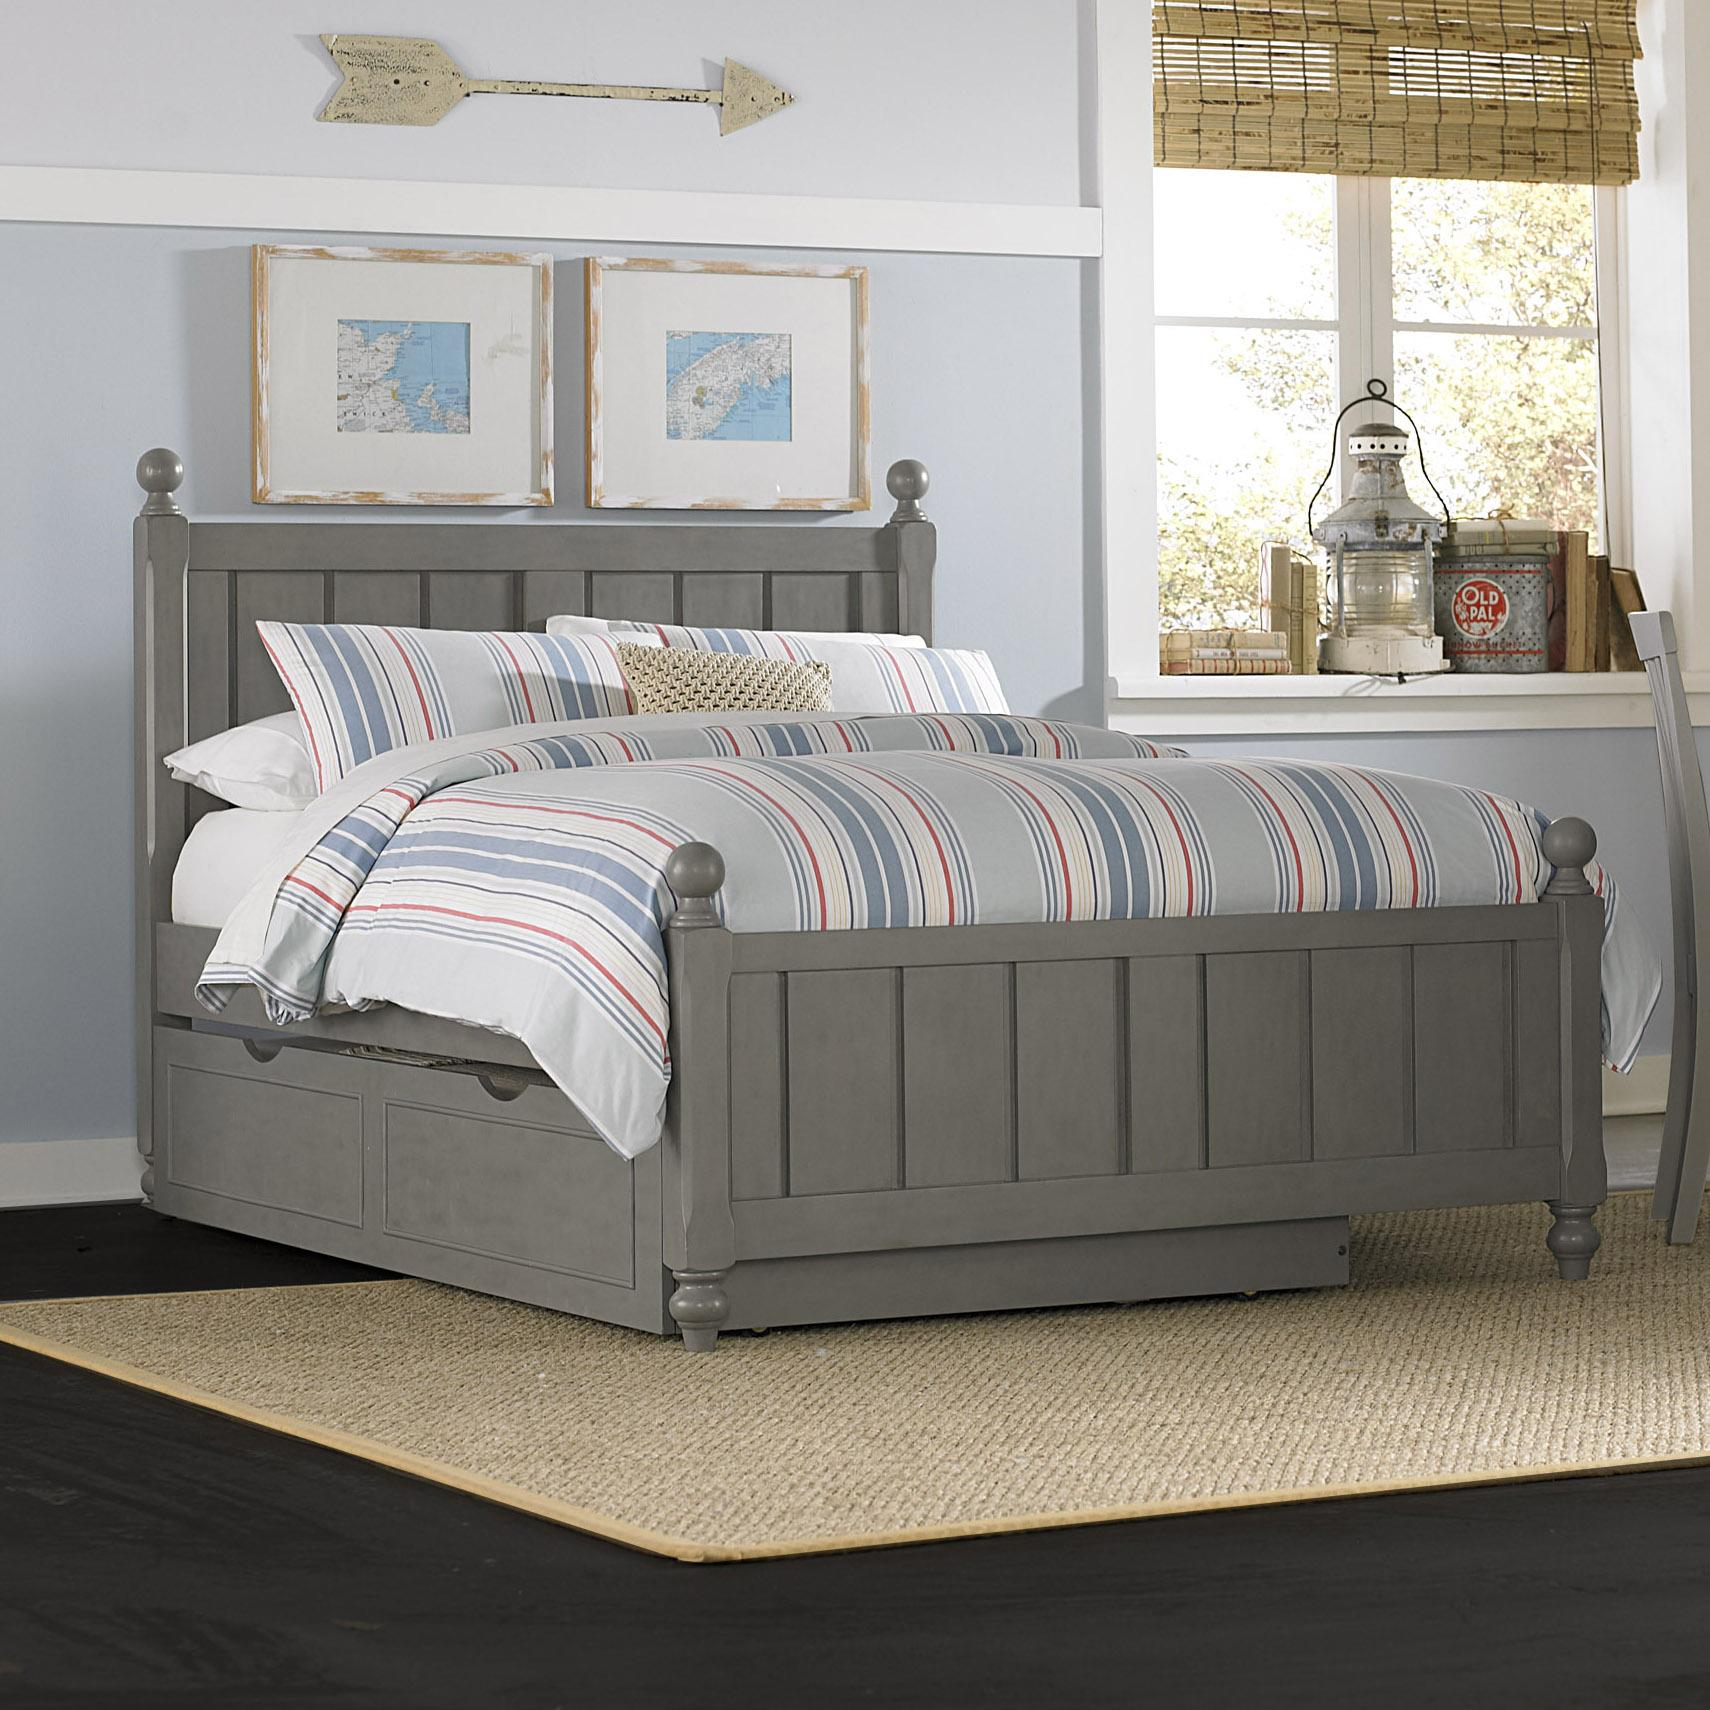 NE Kids Lake House Full Kennedy (Panel) Bed + Trundle - Item Number: 2025+2570